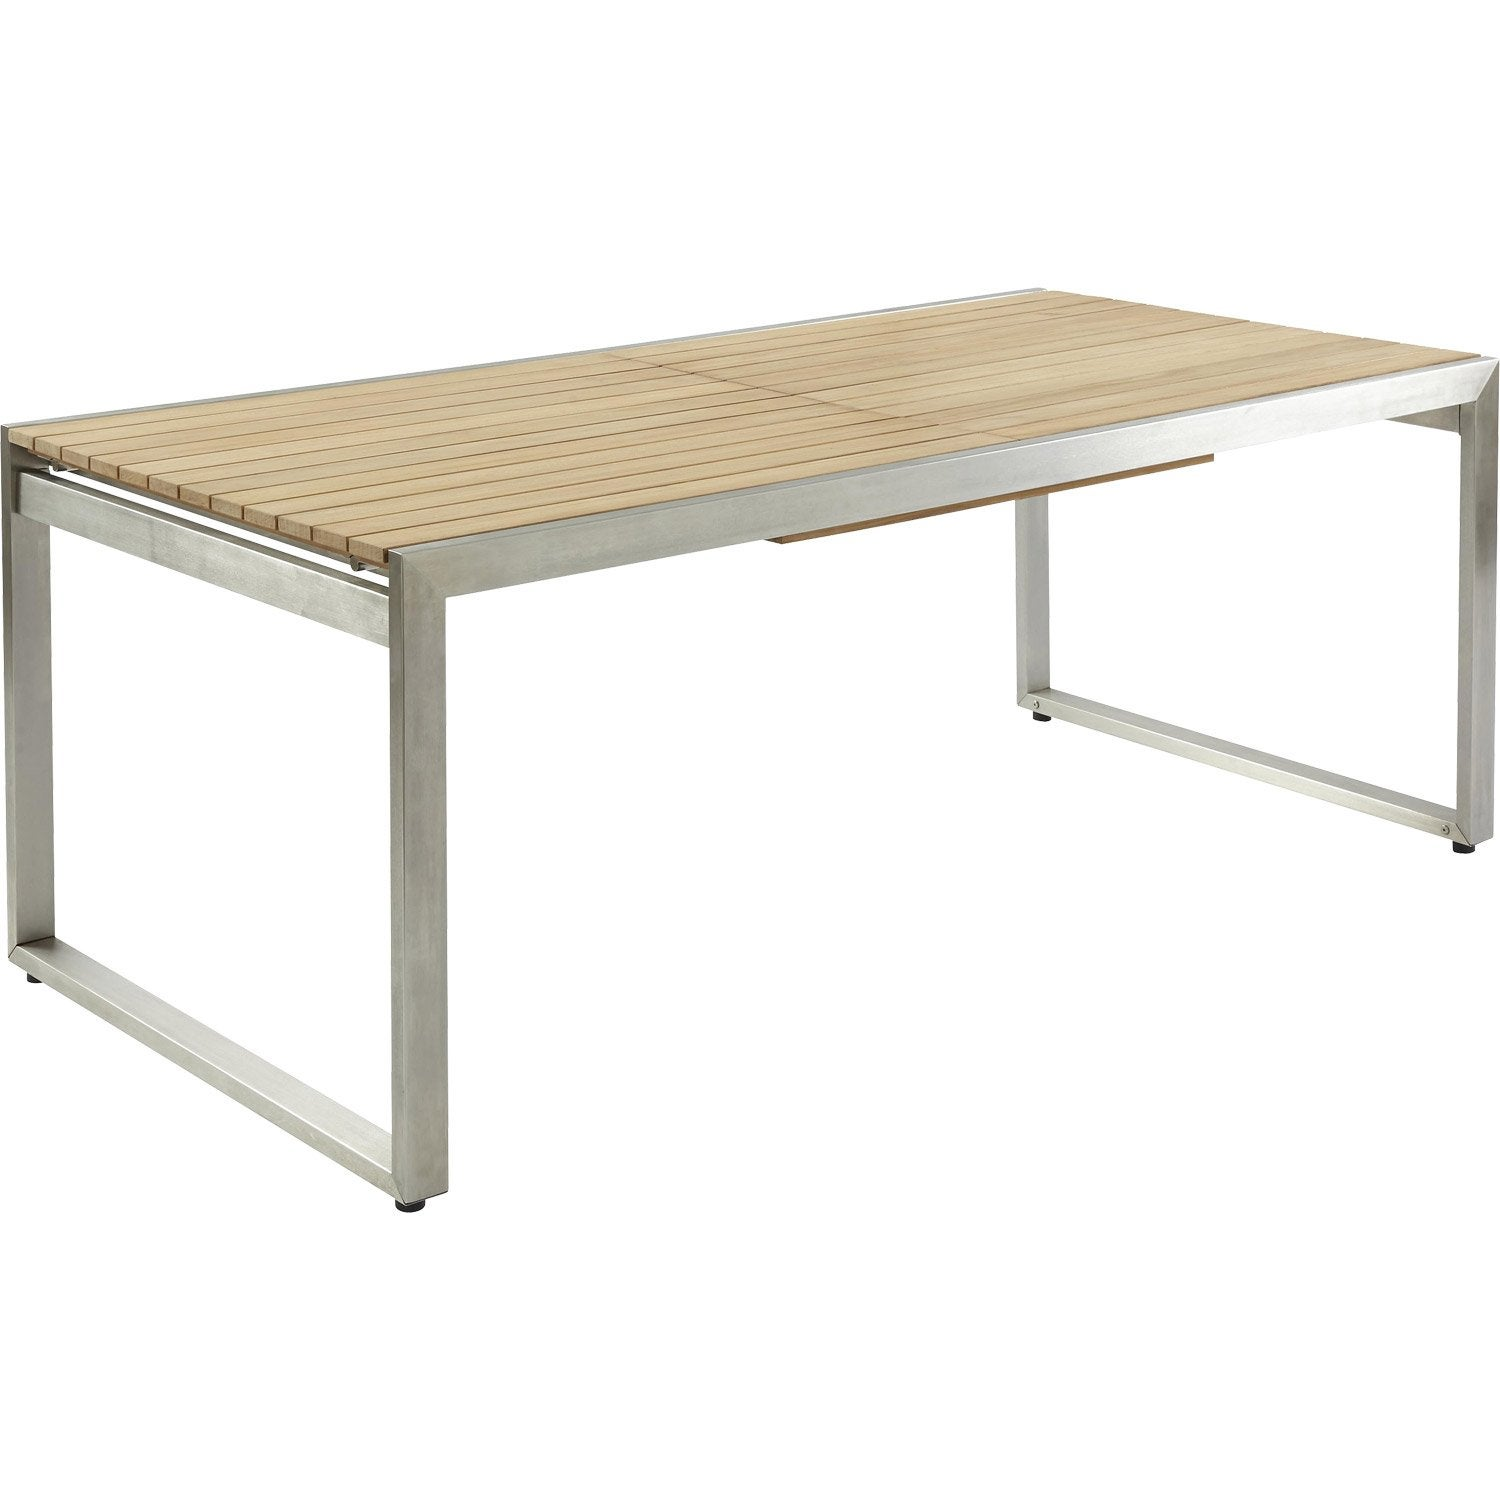 Table basse teck leroy merlin for Leroy merlin table jardin